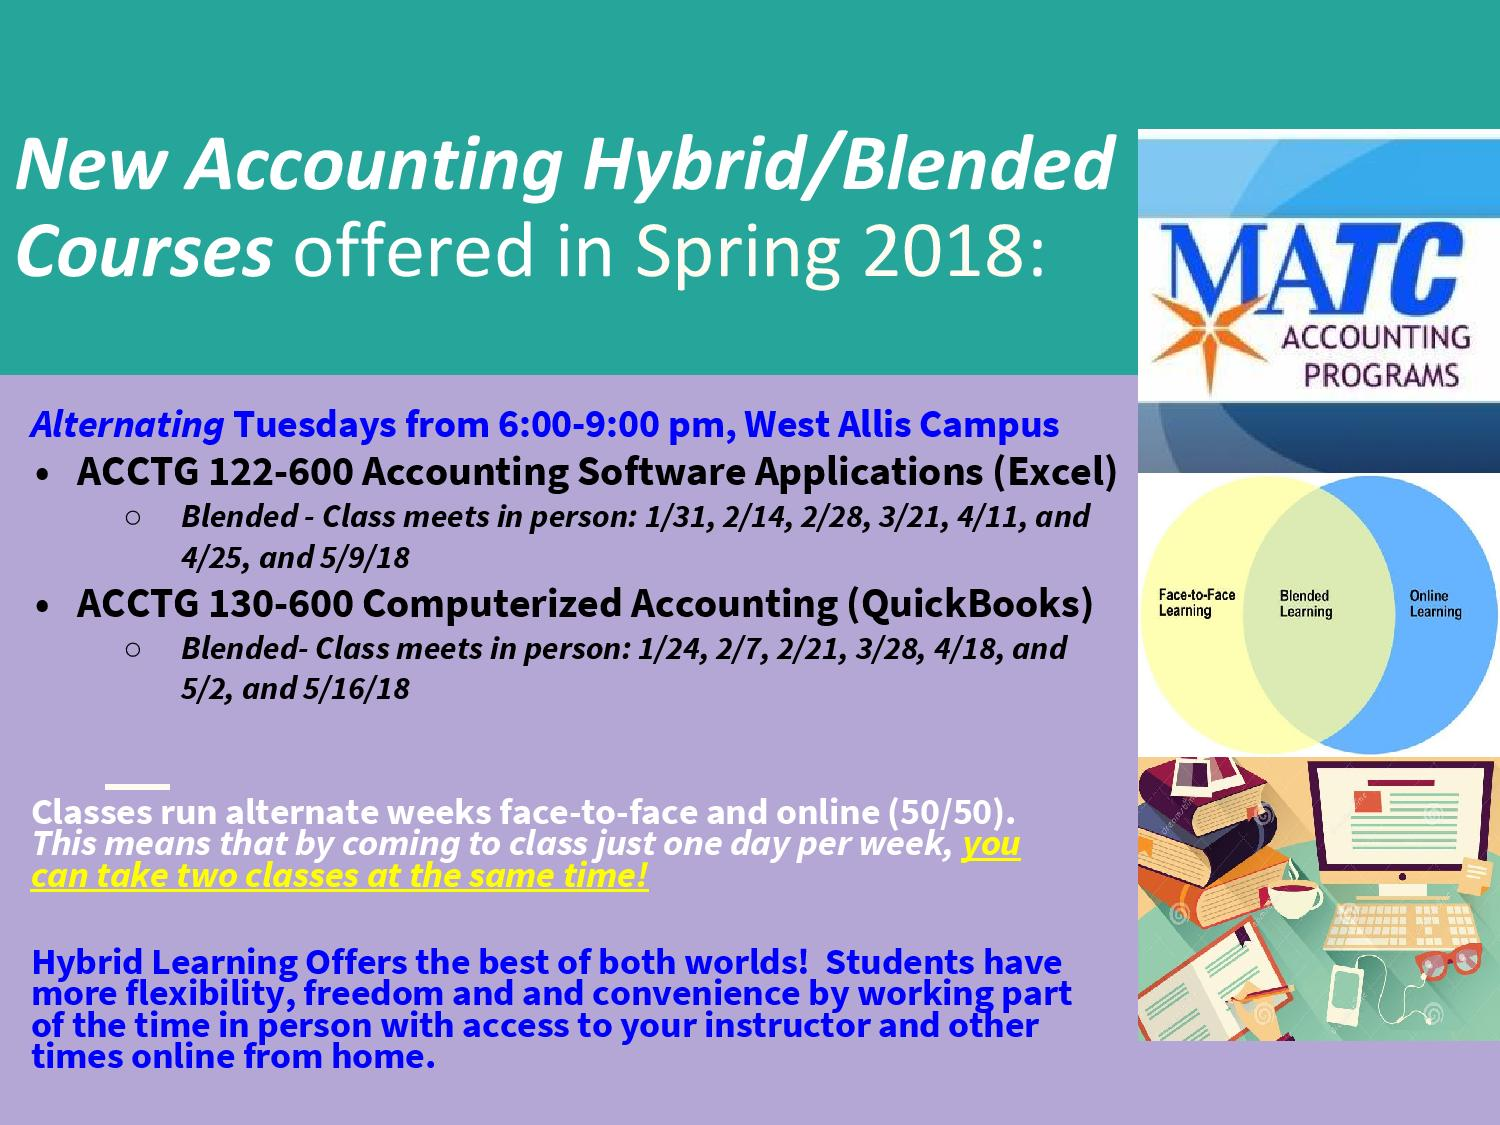 Matc accounting programs we are again offering hybrid courses in spring 2018 xflitez Choice Image